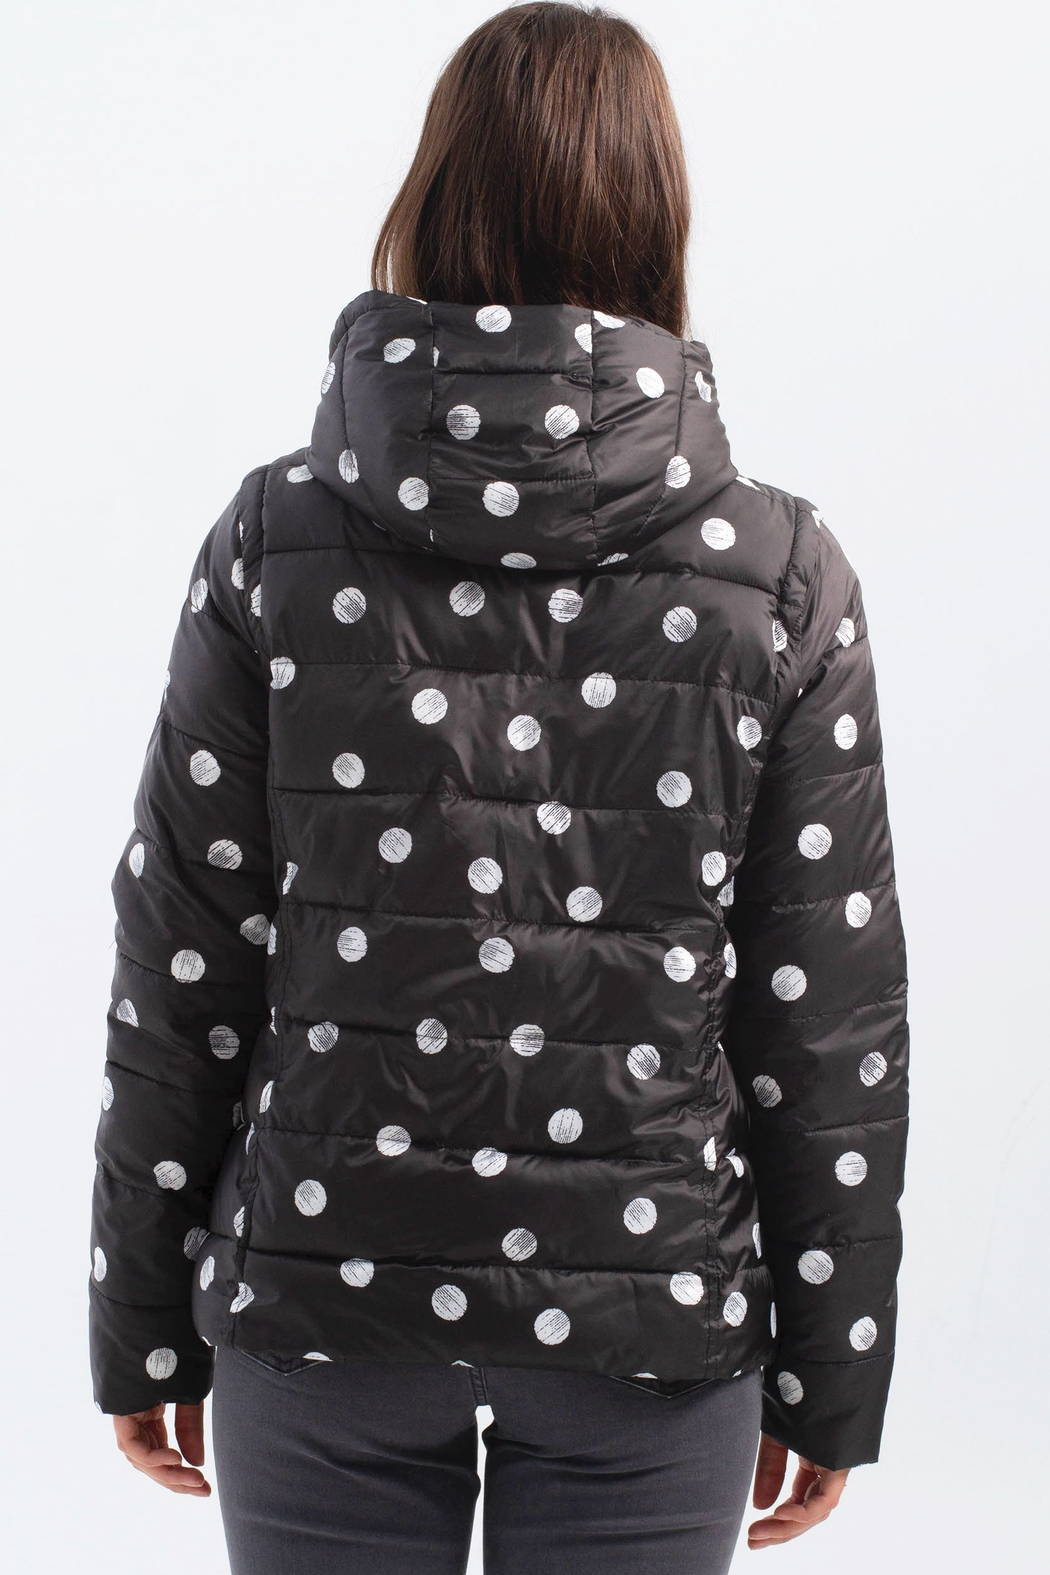 Charlie B. Polka Dot Four Way Puffer Jacket - Back Cropped Image